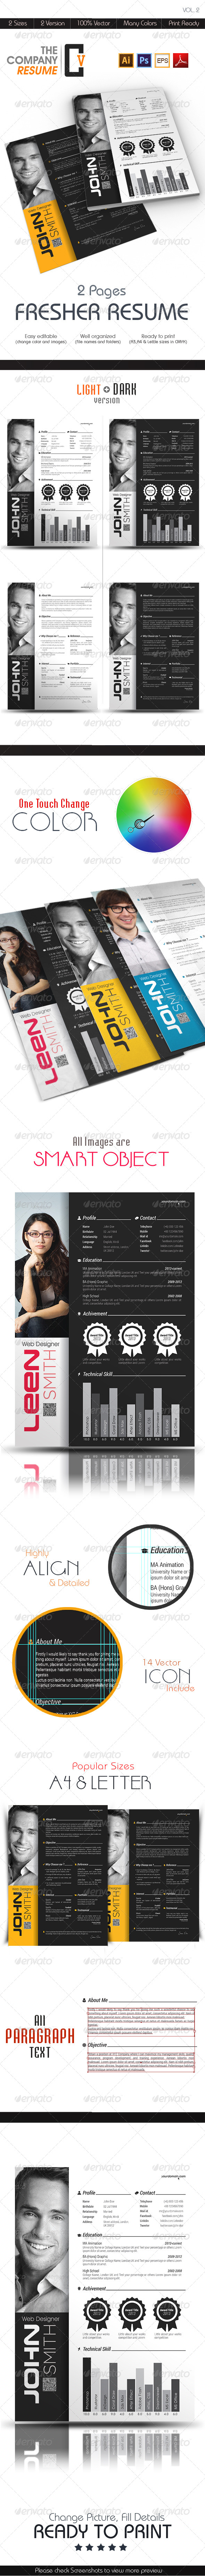 GraphicRiver The Company Fresher Resume 6979070